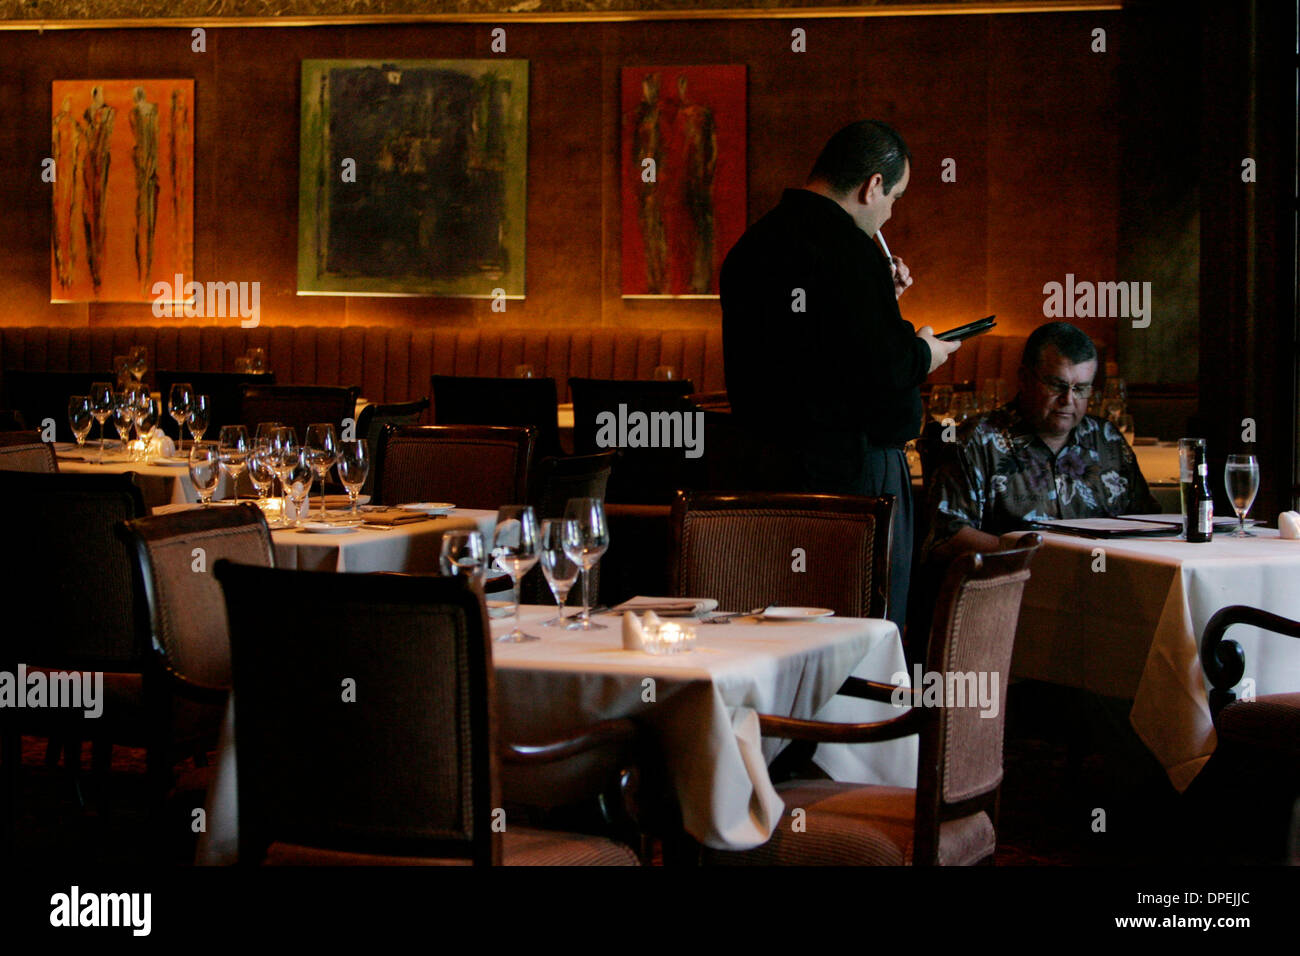 (Published 5/3/2006, E-3) April 18, 2006, San Diego, California, USA_Molly's Restaurant, in the Marriott Hotel and Marina, for the Dining Review. The meat dish is a Niman Ranch Pork Tenderloin with Anson Mills polenta, guanciale (cq), fava beans, mushrooms, port jus. The Spring Vegetable Tasting Platter has four items: baby carrots with marcona almonds, pea flan with a ring of carr - Stock Image